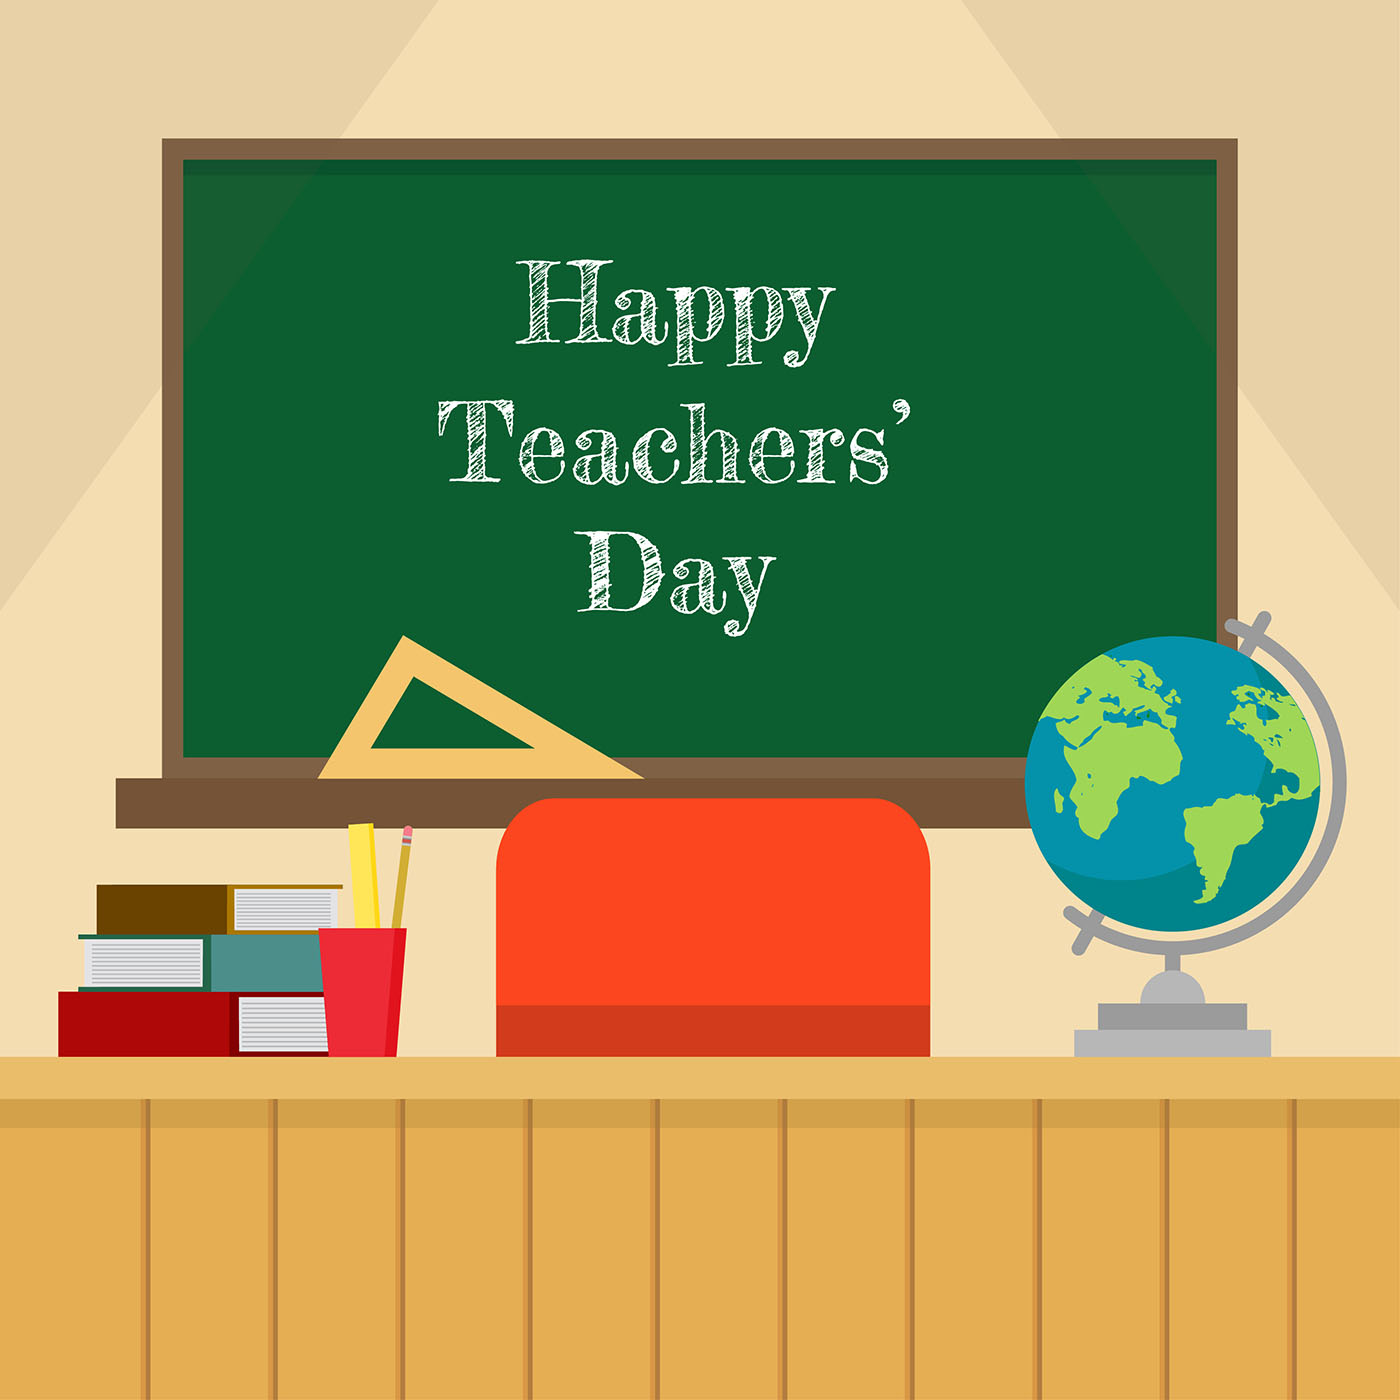 Classroom Design Tools Free ~ Teachers day classroom vector download free art